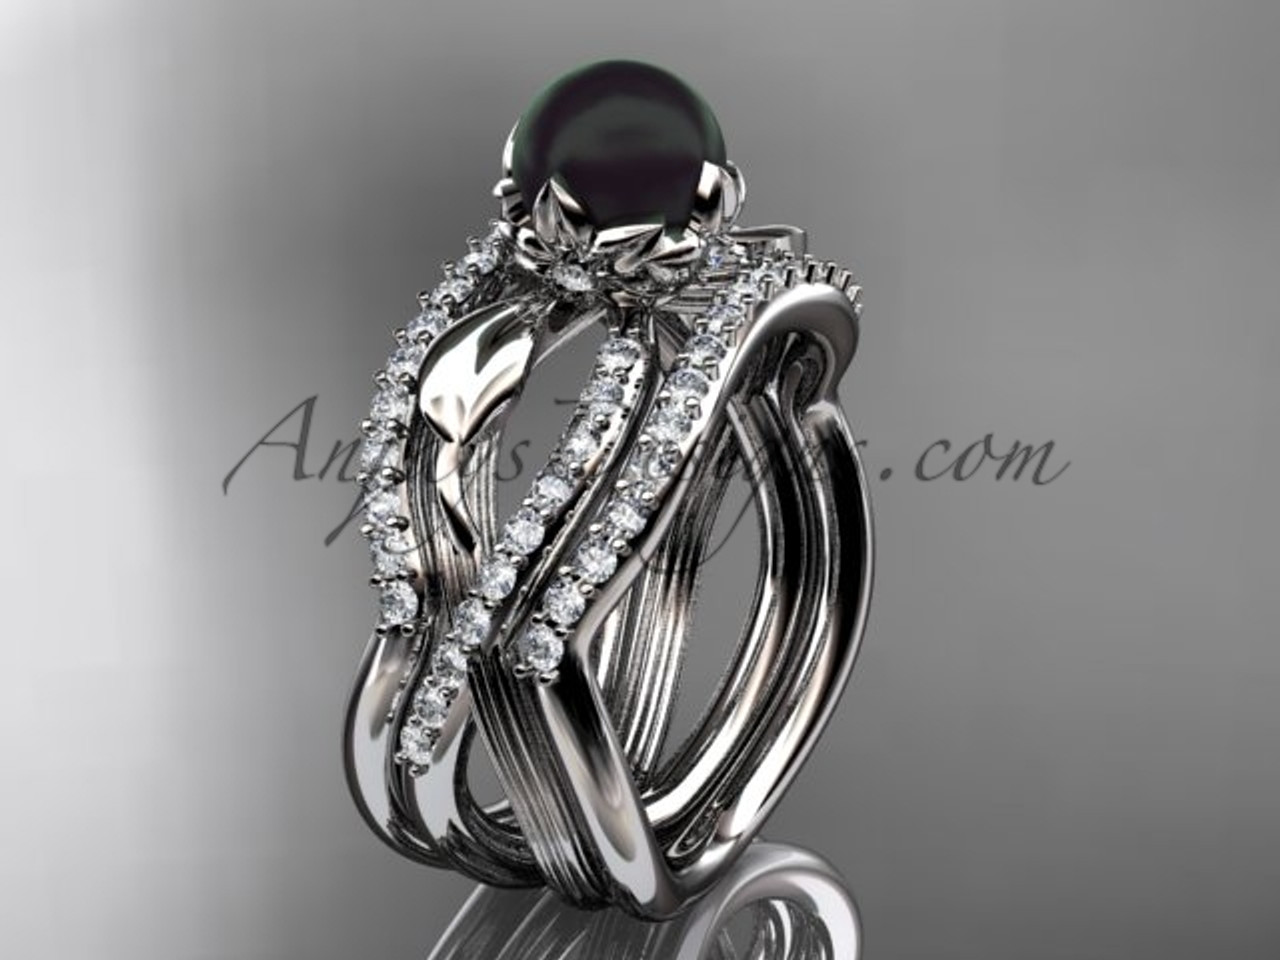 Shop for unique tahitian black pearl wedding ring sets online at anjaysdesigns.com Free shipping. Platinum tahitian black pearl flower bridal ring set ABP70S